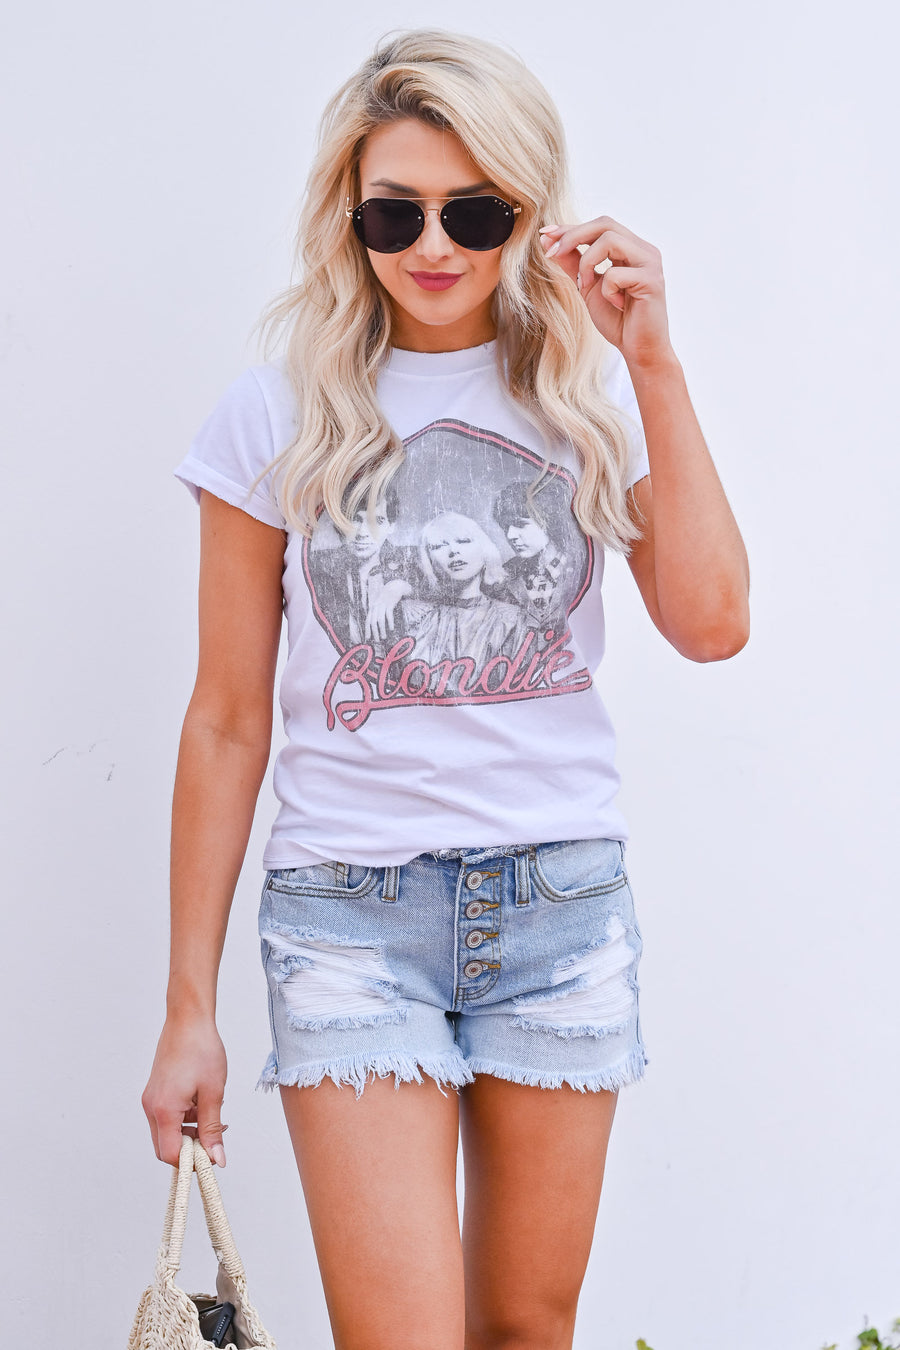 Blondie Graphic Tee - White womens casual distressed short sleeve graphic tshirt closet candy front